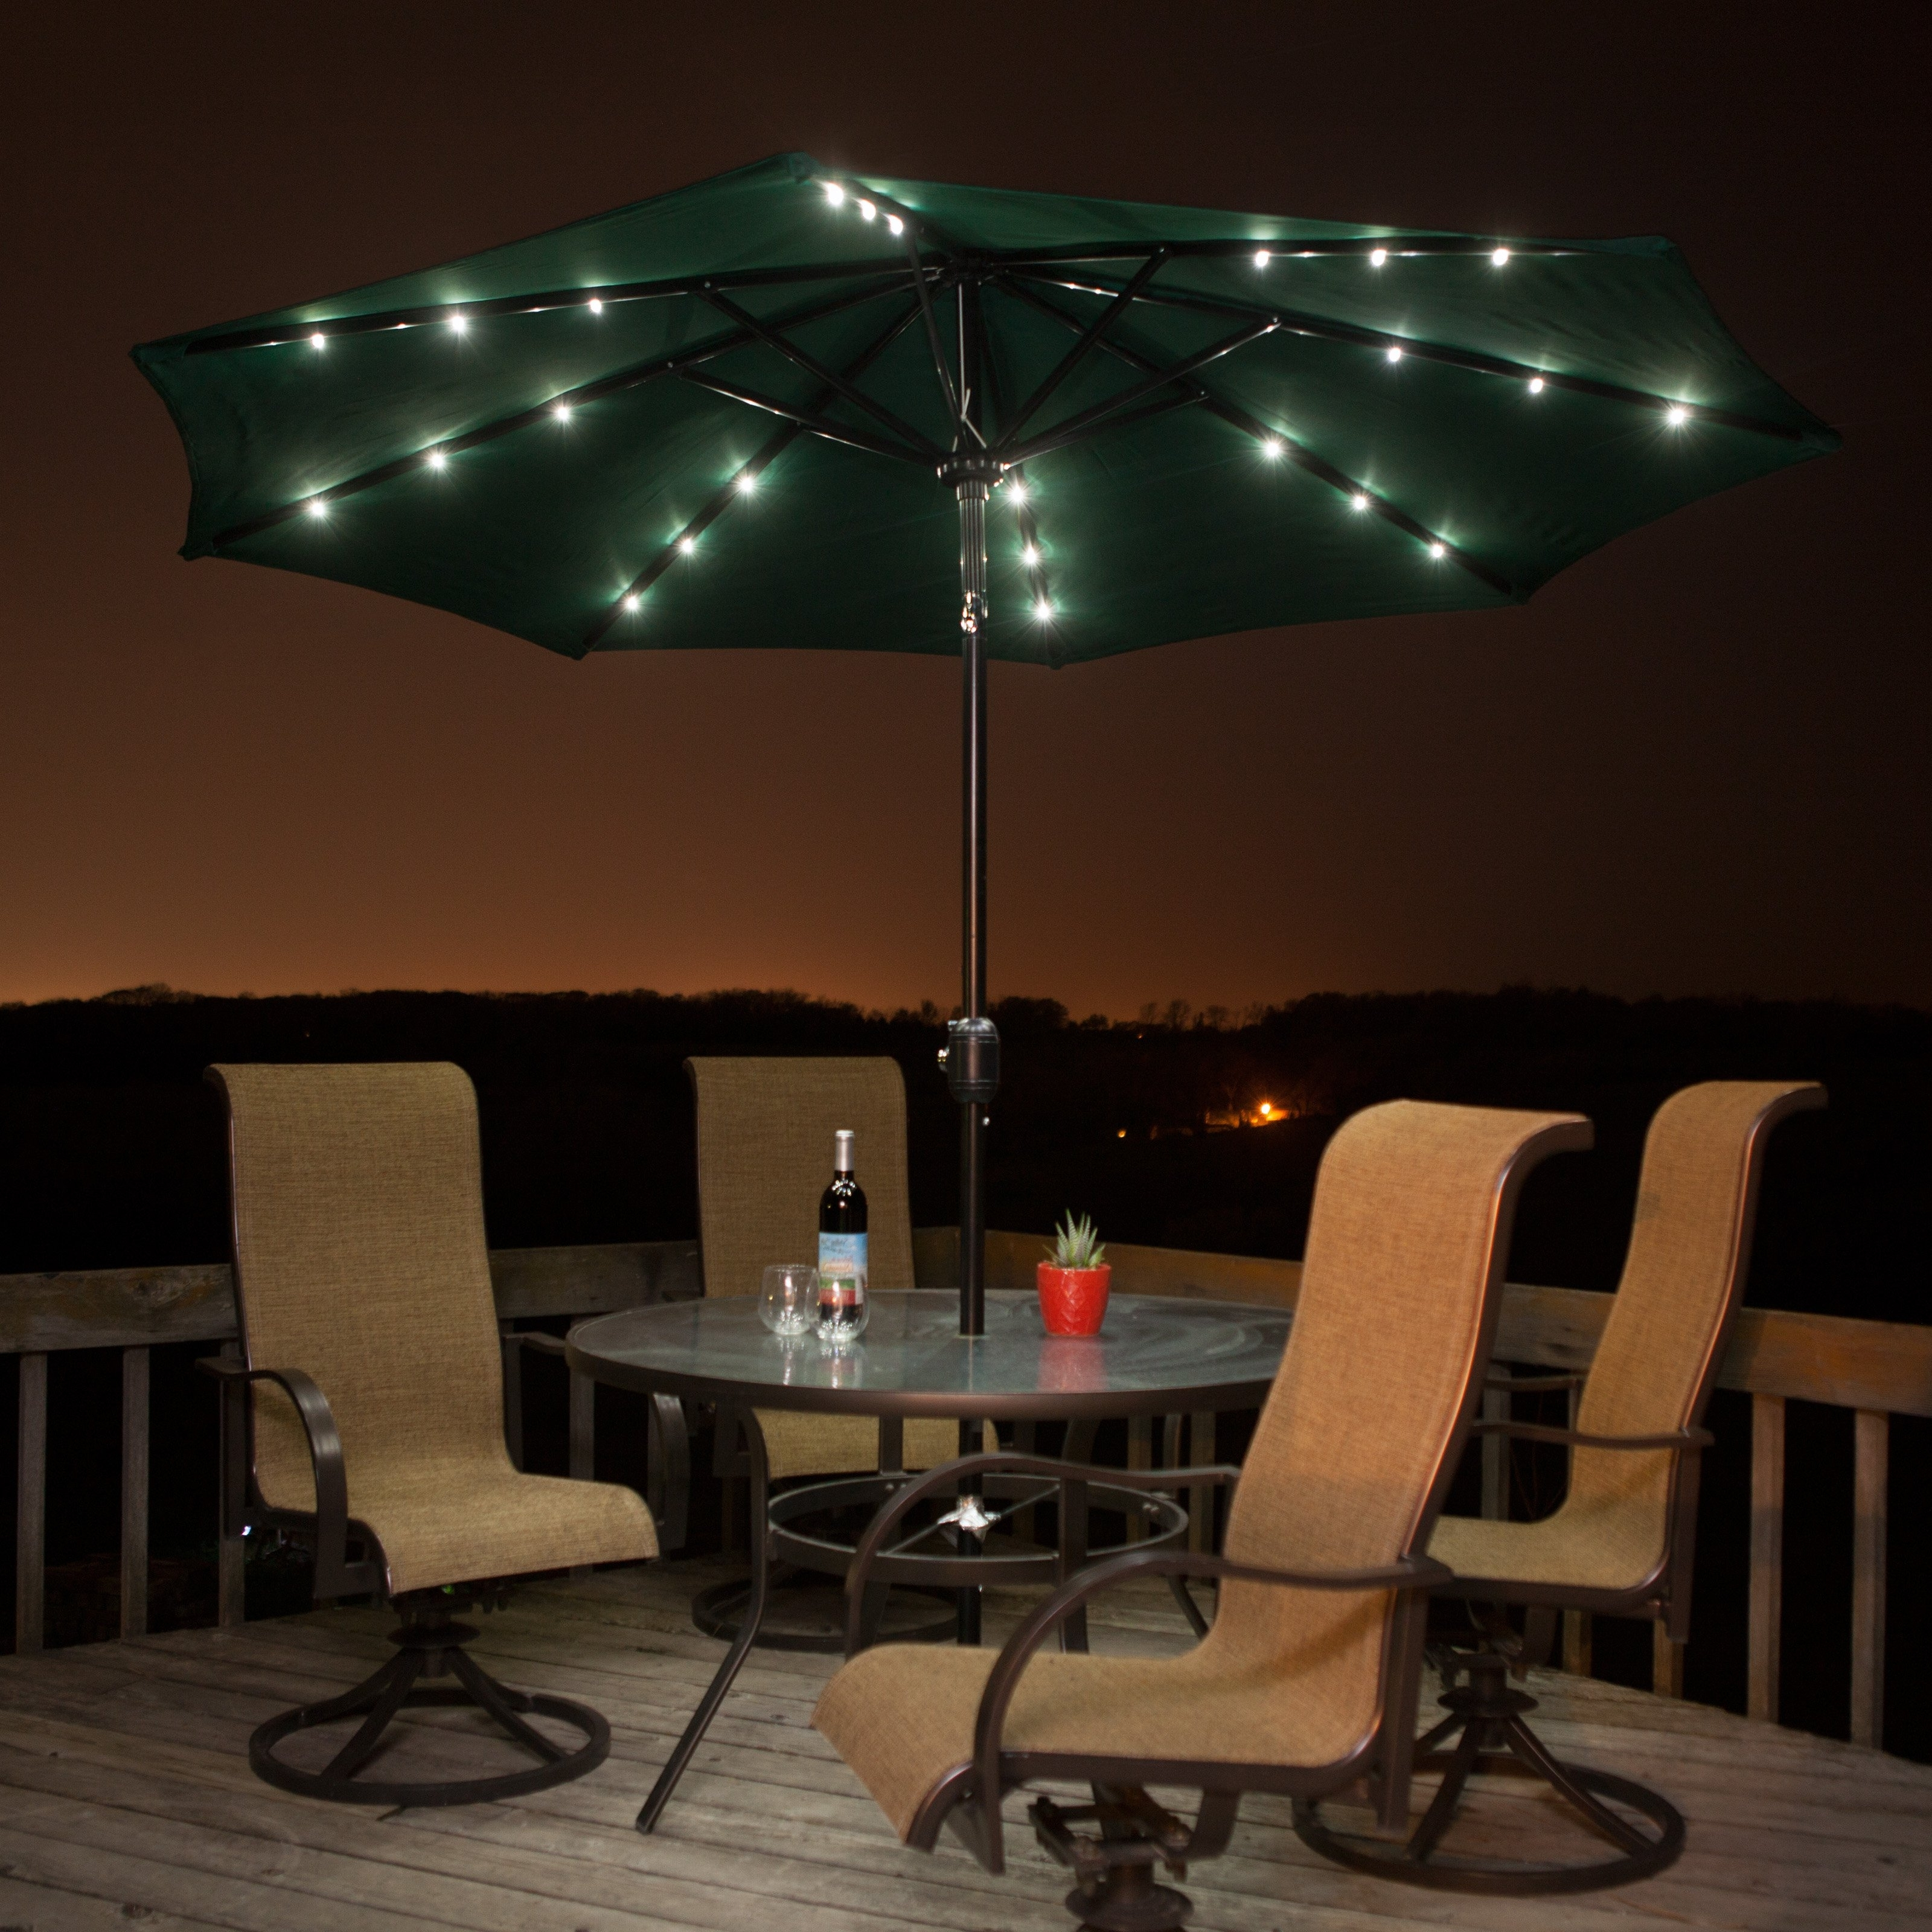 Lighted Patio Umbrellas — Mistikcamping Home Design : Different Intended For Current Lighted Patio Umbrellas (View 4 of 20)